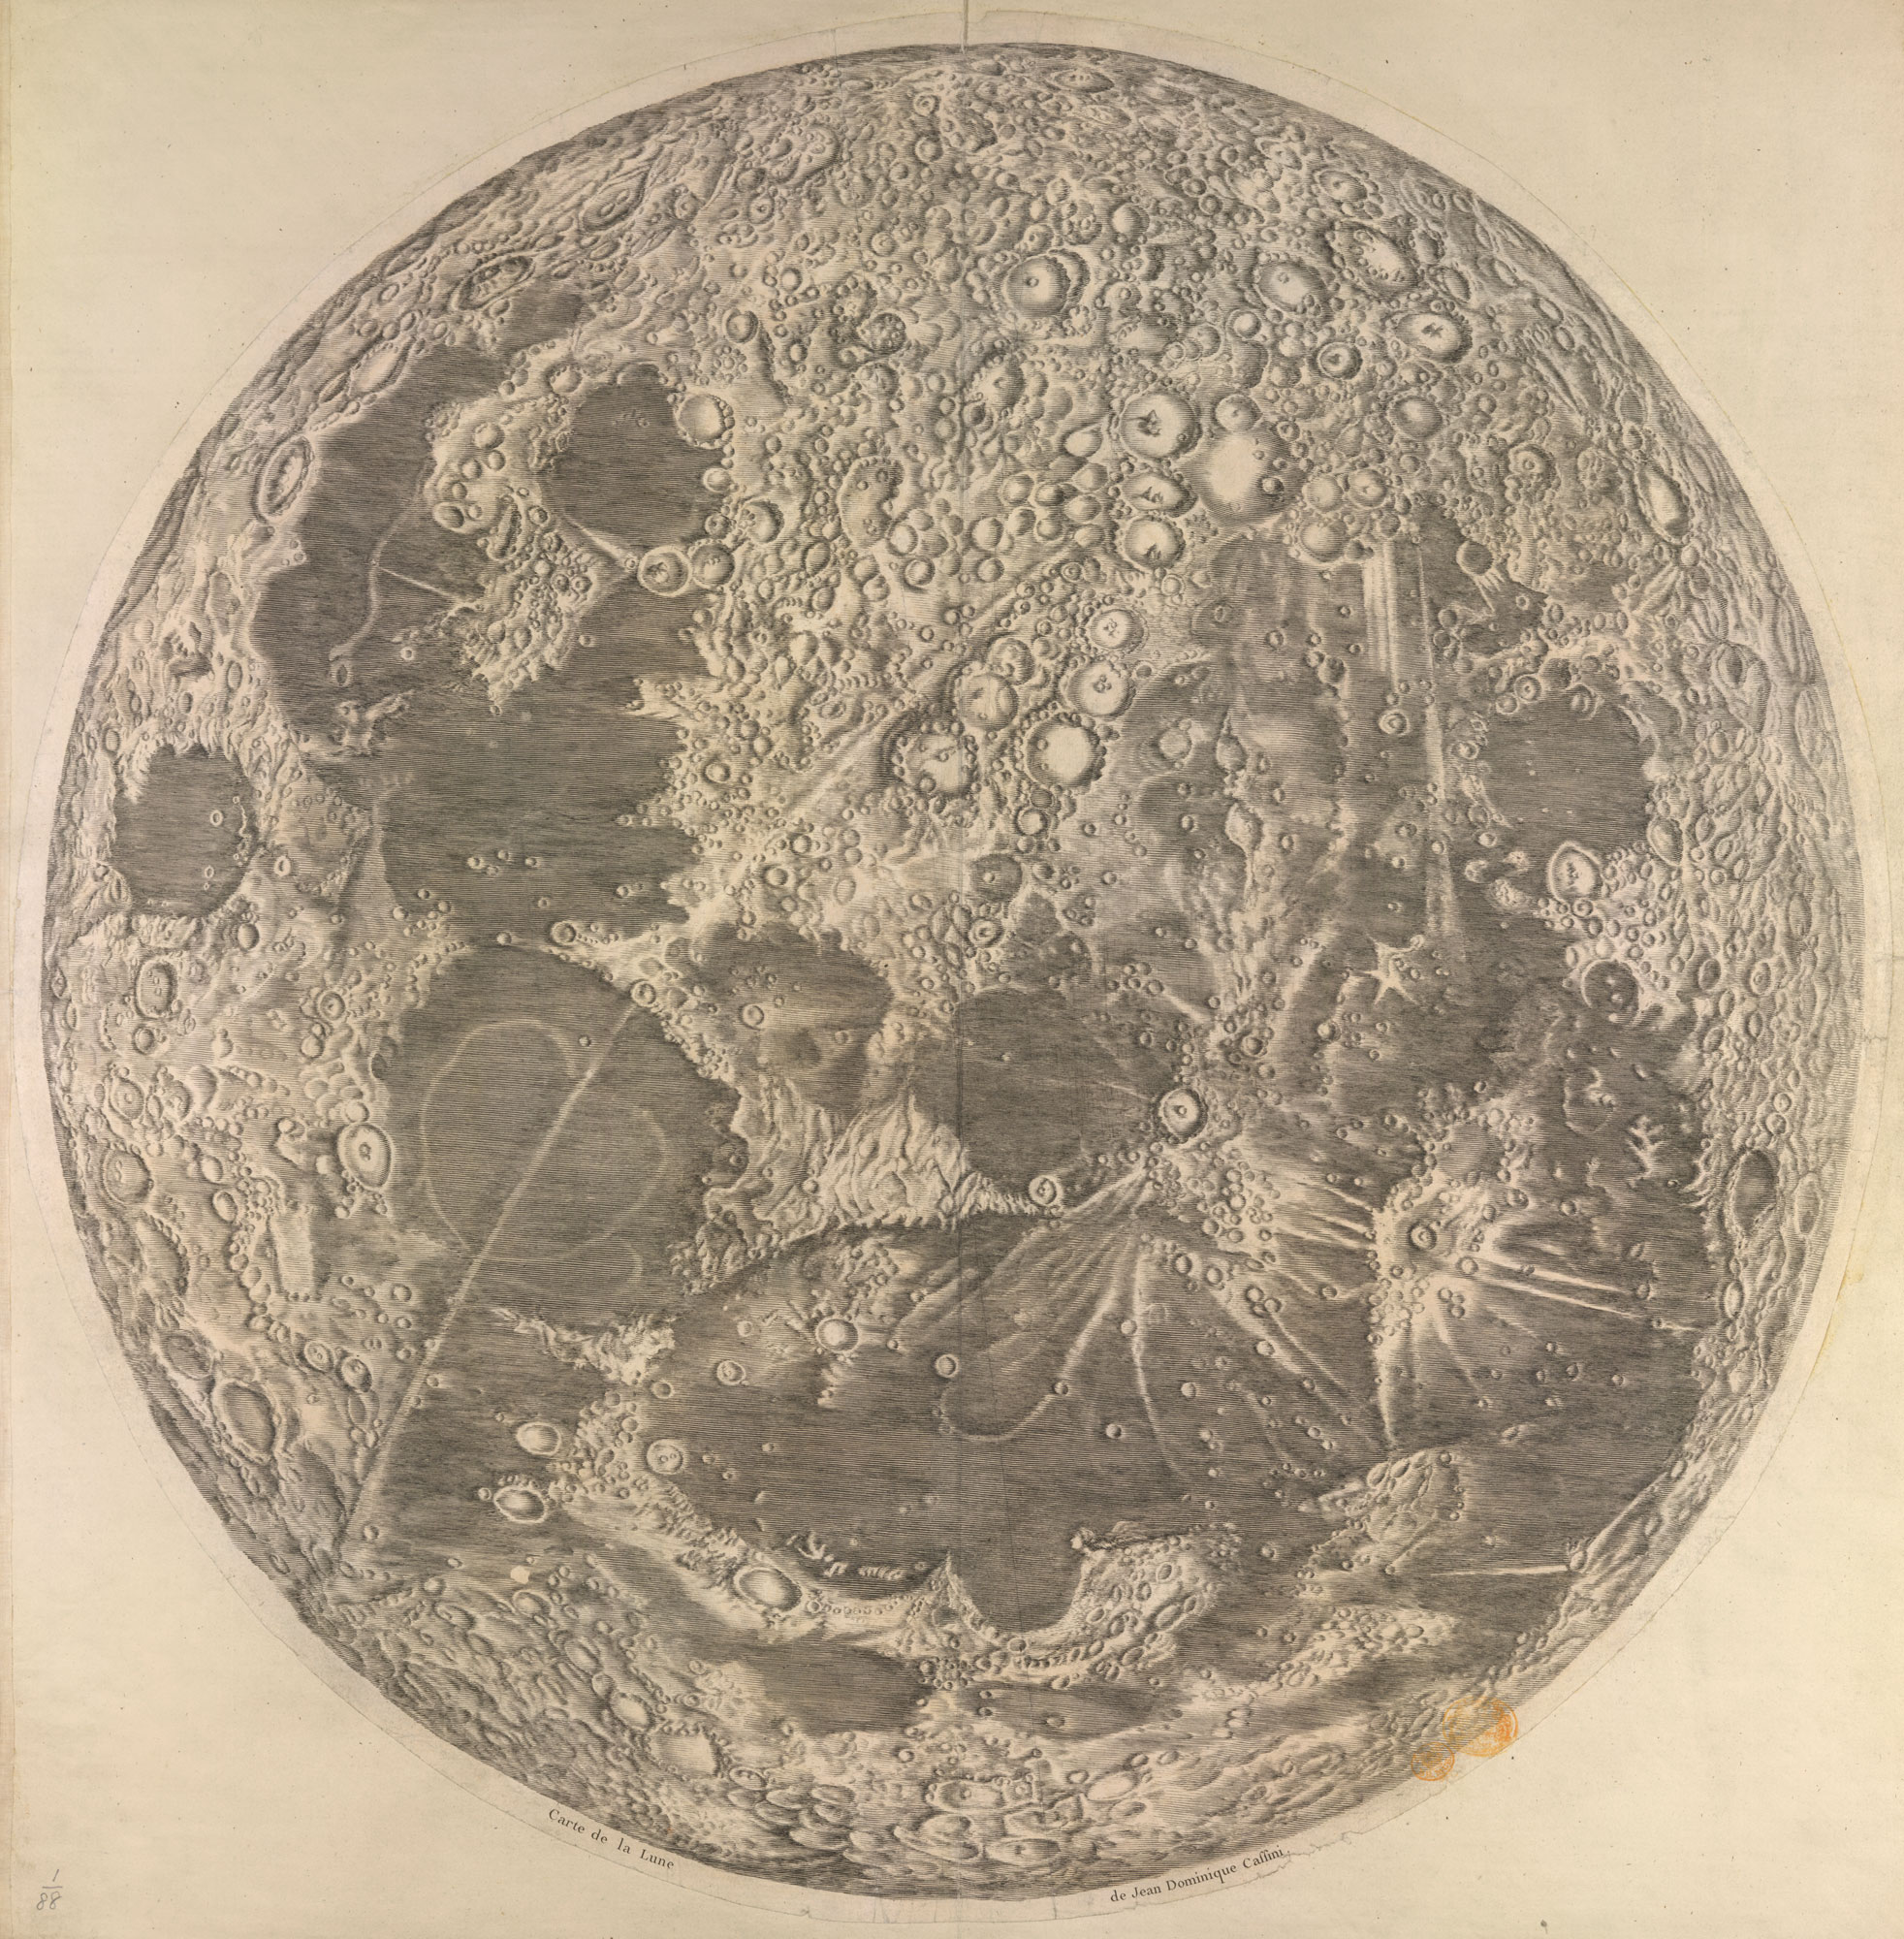 Map of the moon, by G D Cini - The British Library Map Moon on ganymede map, neptune map, titan map, surreal map, pluto map, saturn map, sun map, earth map, neil armstrong, lunar cycle map, blue moon, jupiter map, uranus map, outland map, star map, mercury map, io map, statue map, the ship map, solar system, microscope map, mars map, black hole map,